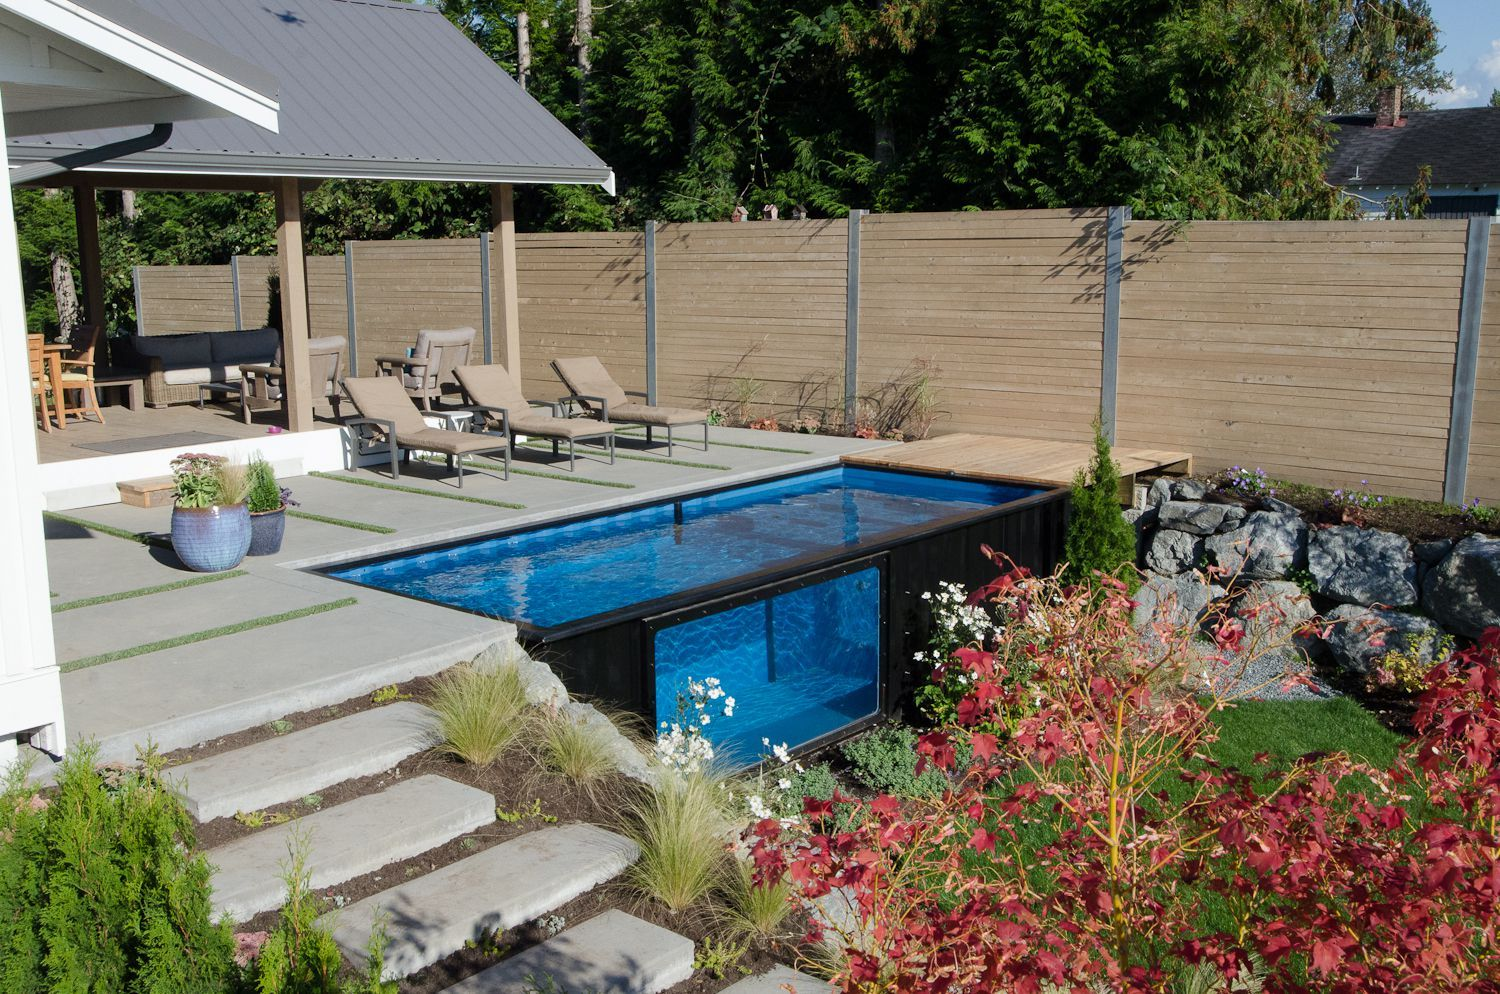 These Creative Swimming Pool Designs Will Make a Splash In ...